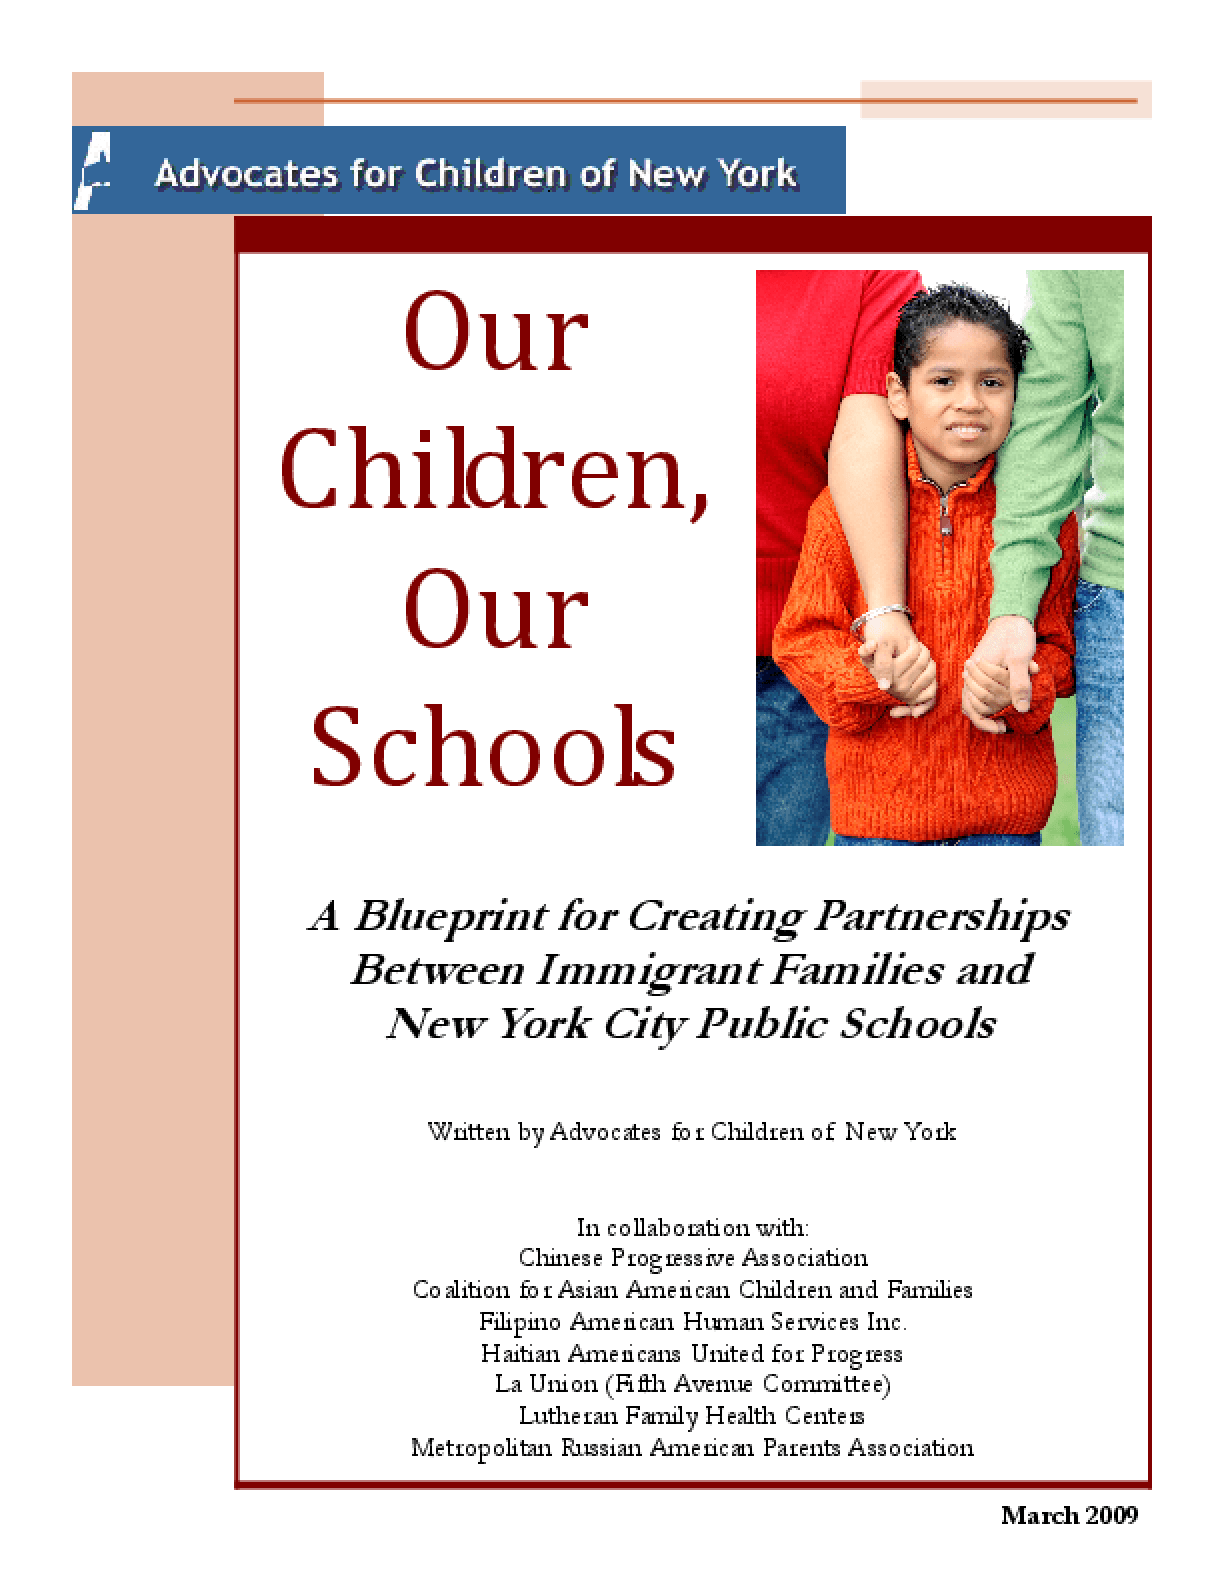 Our Children Our Schools: A Blueprint for Creating Partnerships Between Immigrant Families and New York City Public Schools